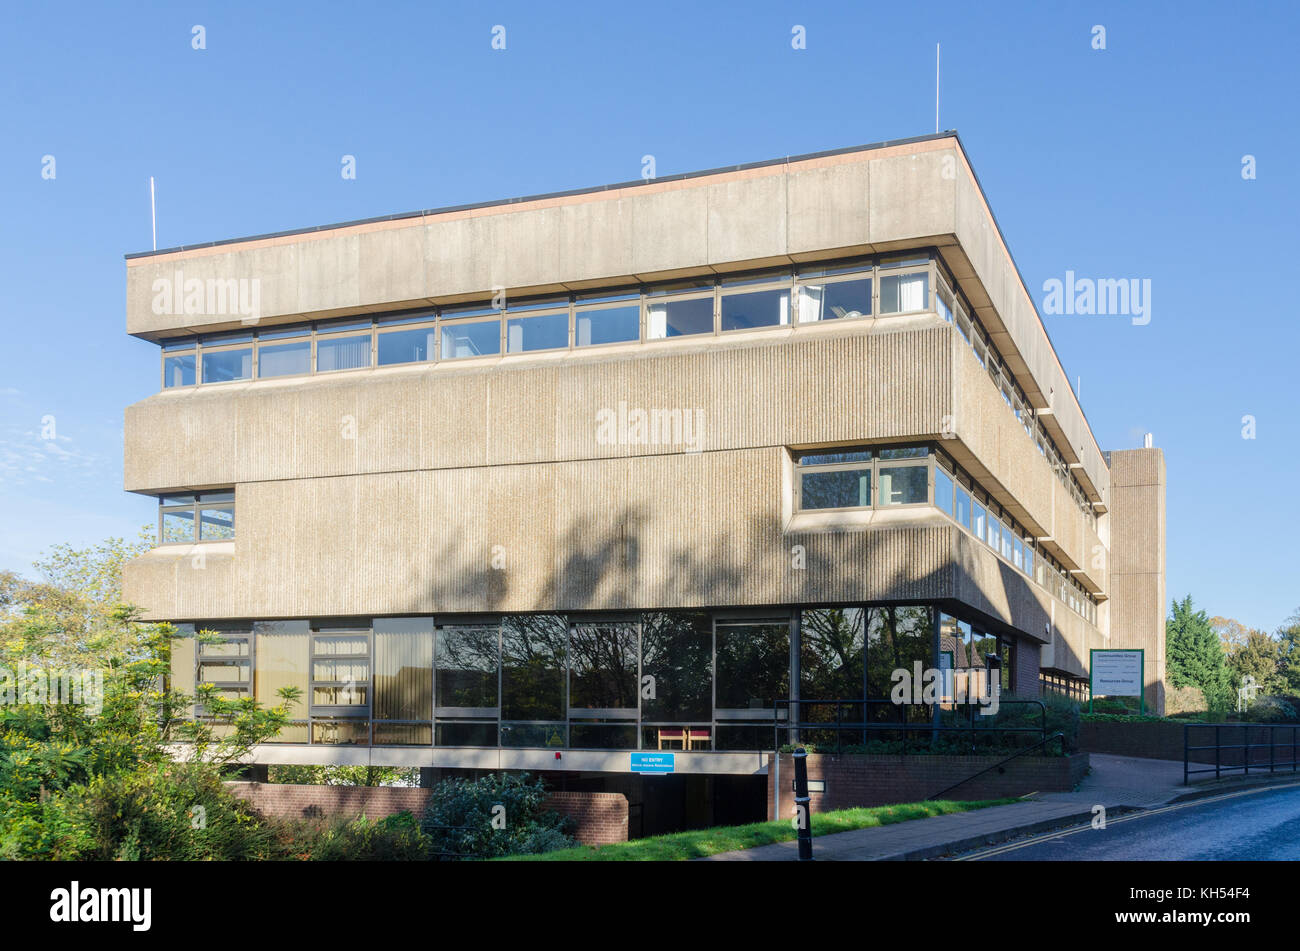 Warwickshire County Council brutalist office building in Barrack Street, Warwick, UK - Stock Image